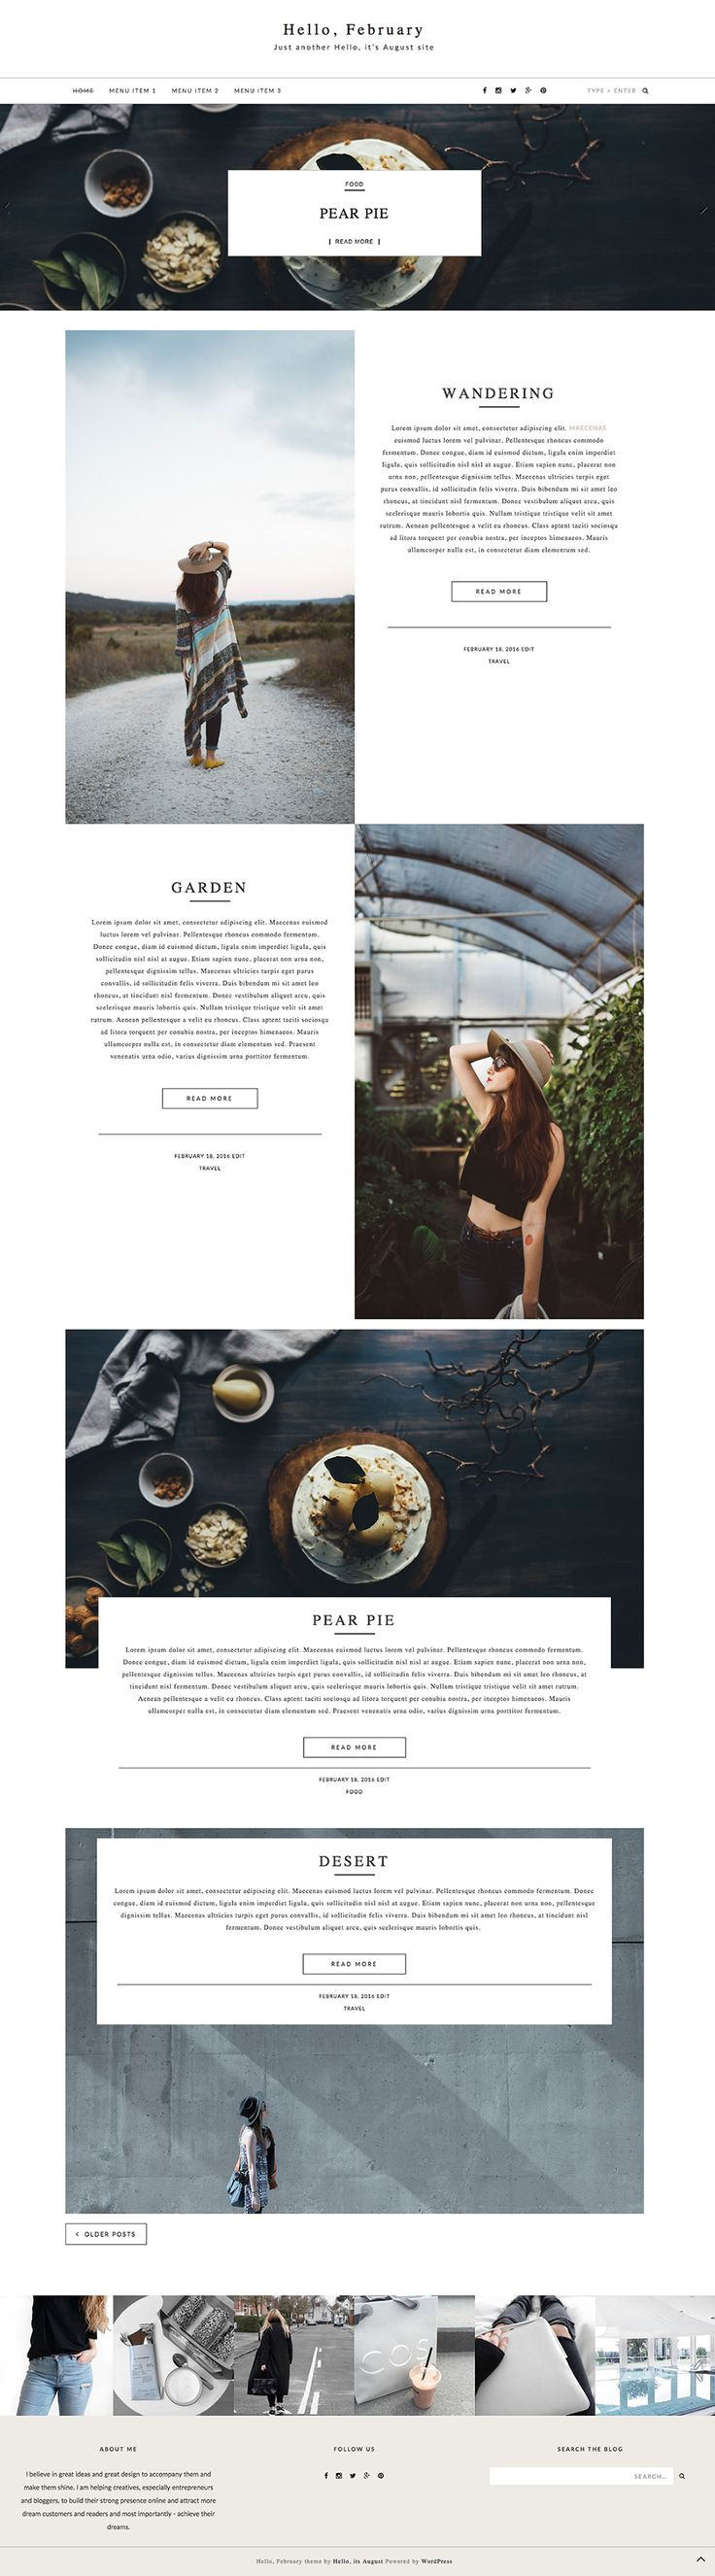 Hello, February is a clean and minimal, premium Wordpress blog theme. It includes featured post slider, 4 content layout options, 4 post layout options and sticky navigation bar. This template is made for bloggers, who like to showcase their content, especially pictures in a unique way. It is fully responsive and ready to use.